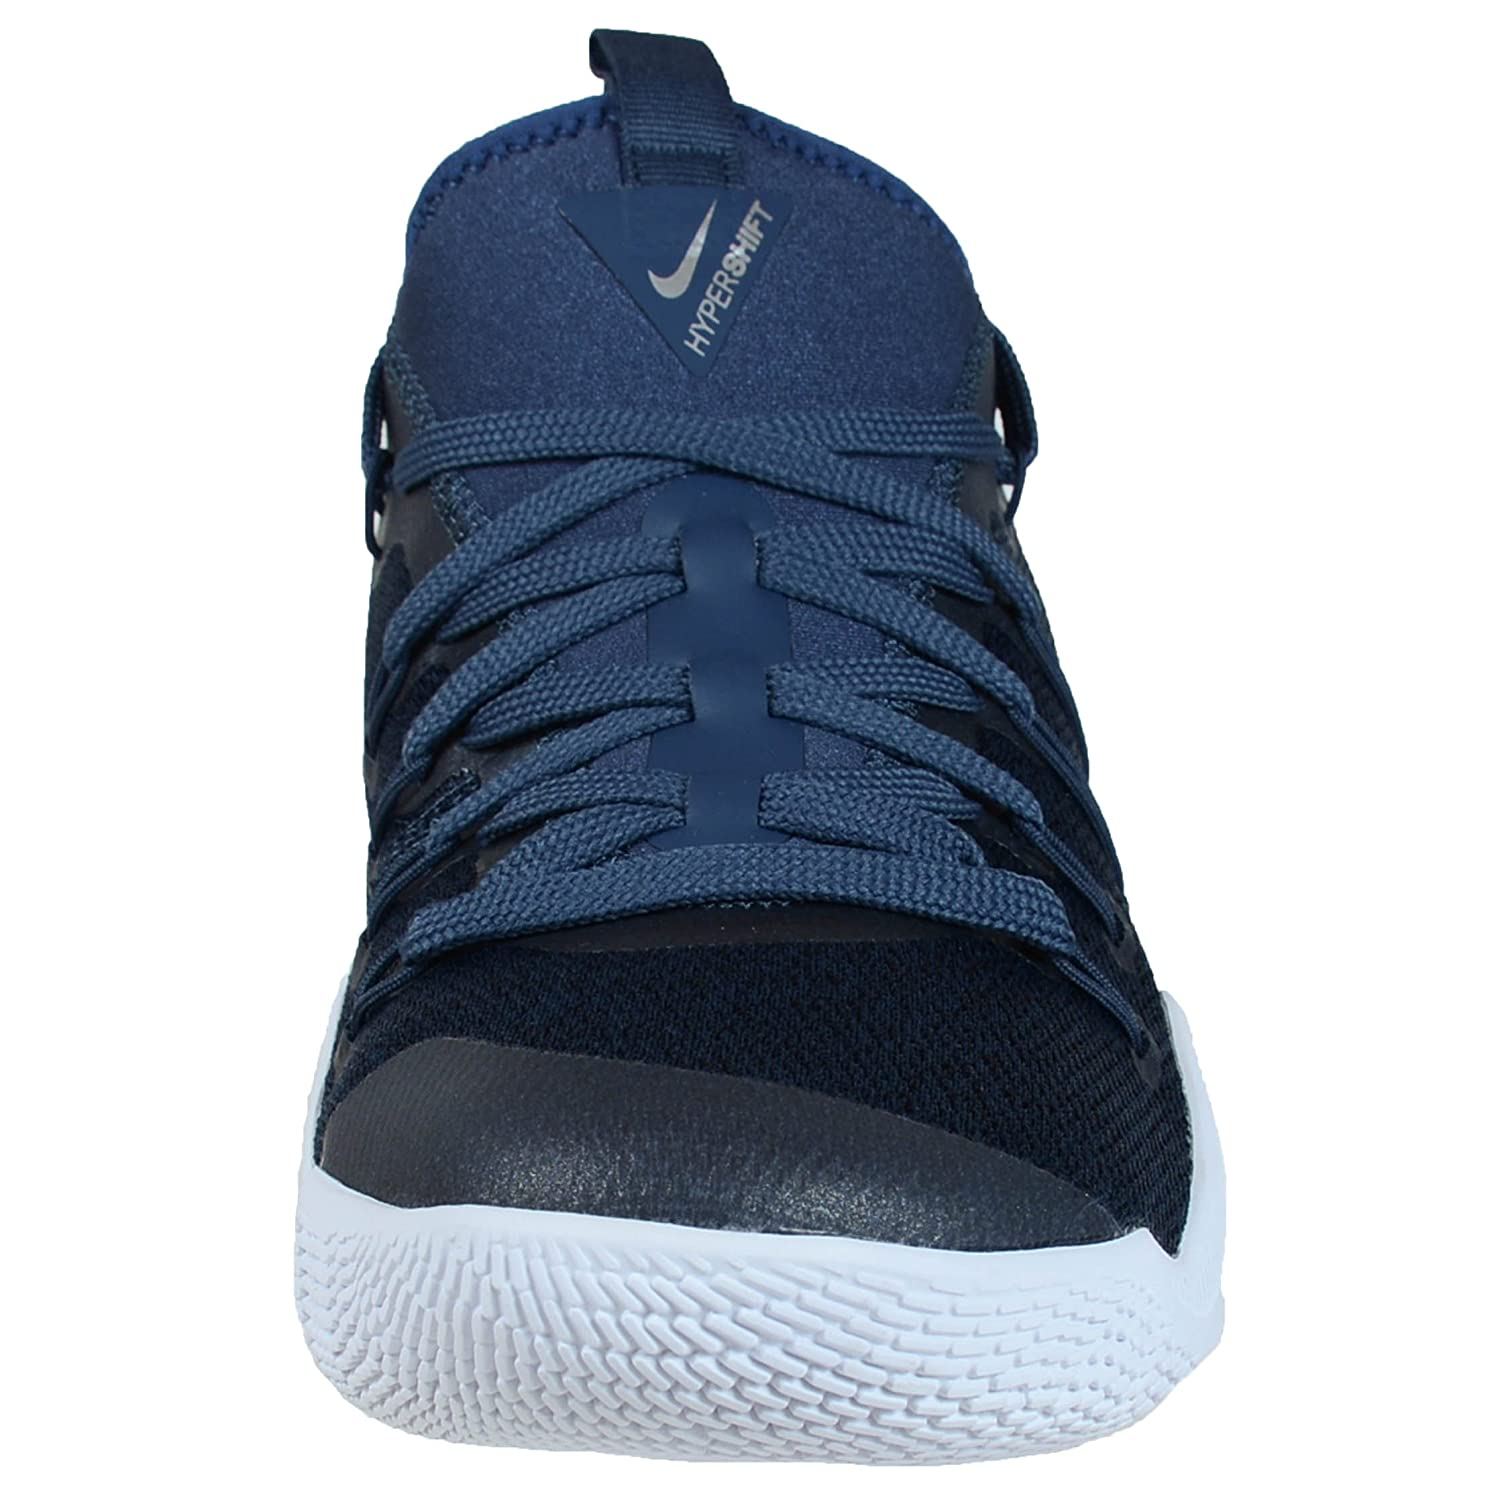 a0f35fcb4c5d purchase grey blue mens nike hypershift shoes 142d7 ae71e